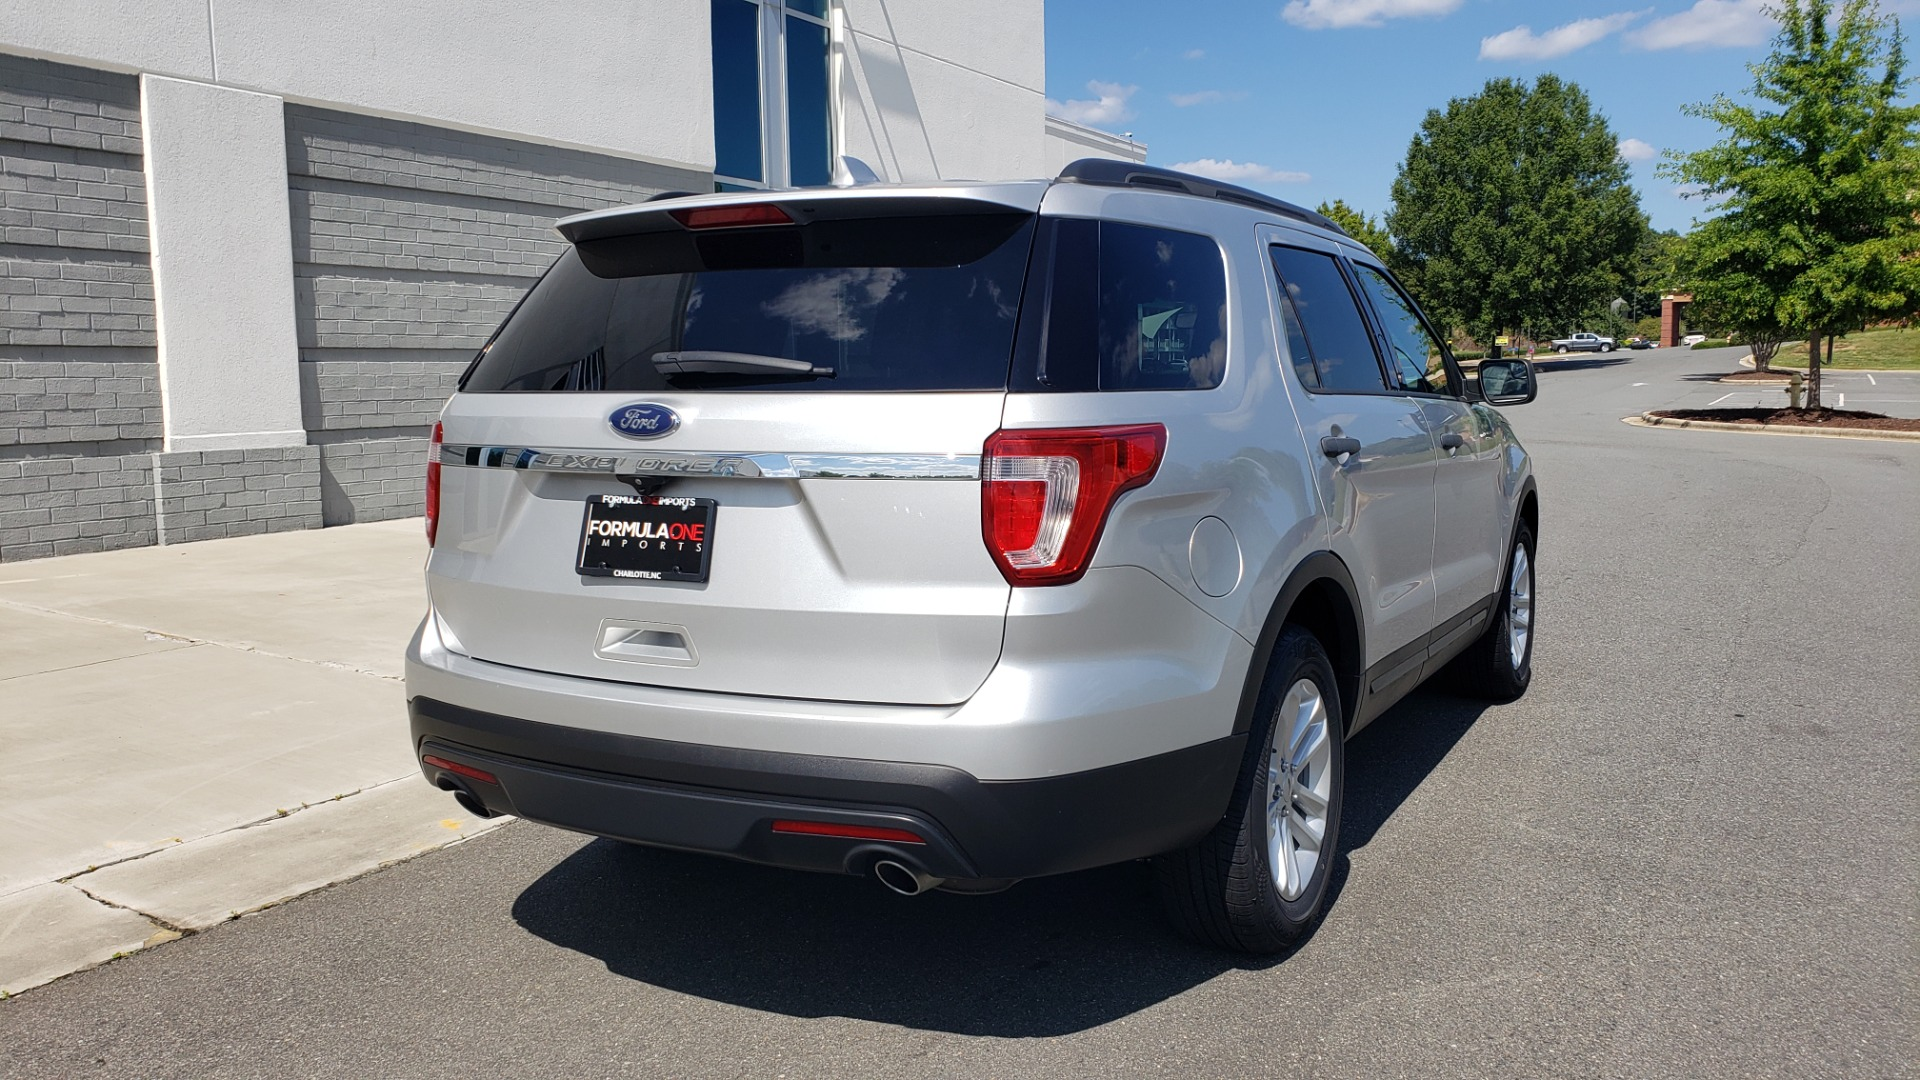 Used 2017 Ford EXPLORER 3.5L V6 / 6-SPD AUTO / BLIND SPOT MONITOR / 3-ROW / SYNC / REARVIEW for sale $22,995 at Formula Imports in Charlotte NC 28227 2